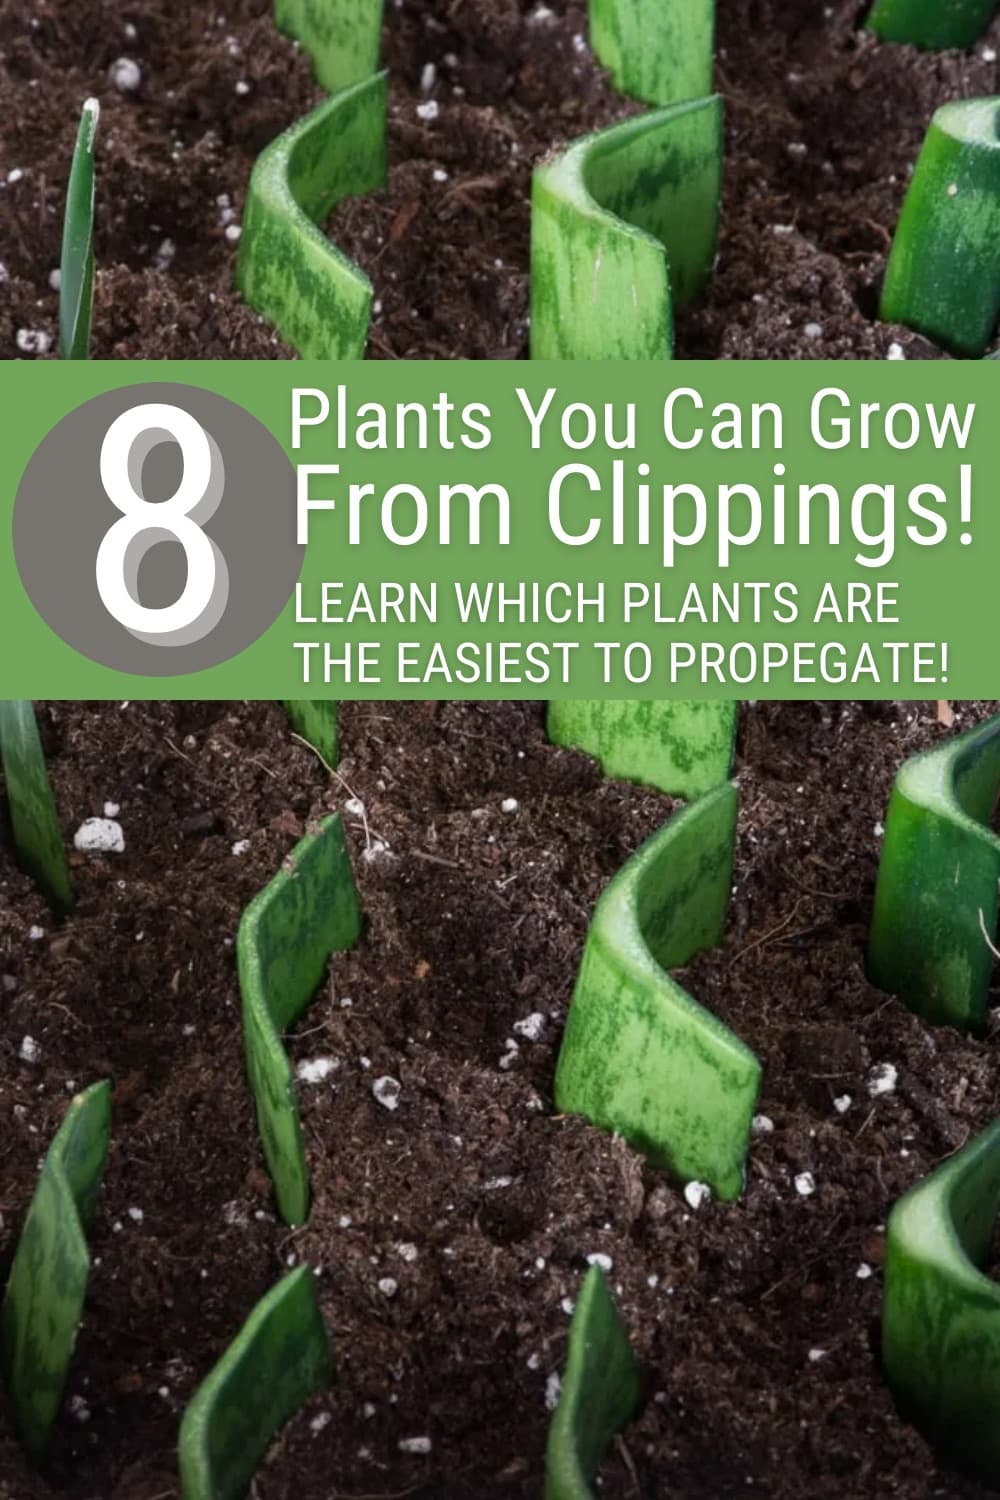 snake plant cuttings in dirt to propagate with text 8 plants you can grow from clippings learn which plants are the easiest to propagate